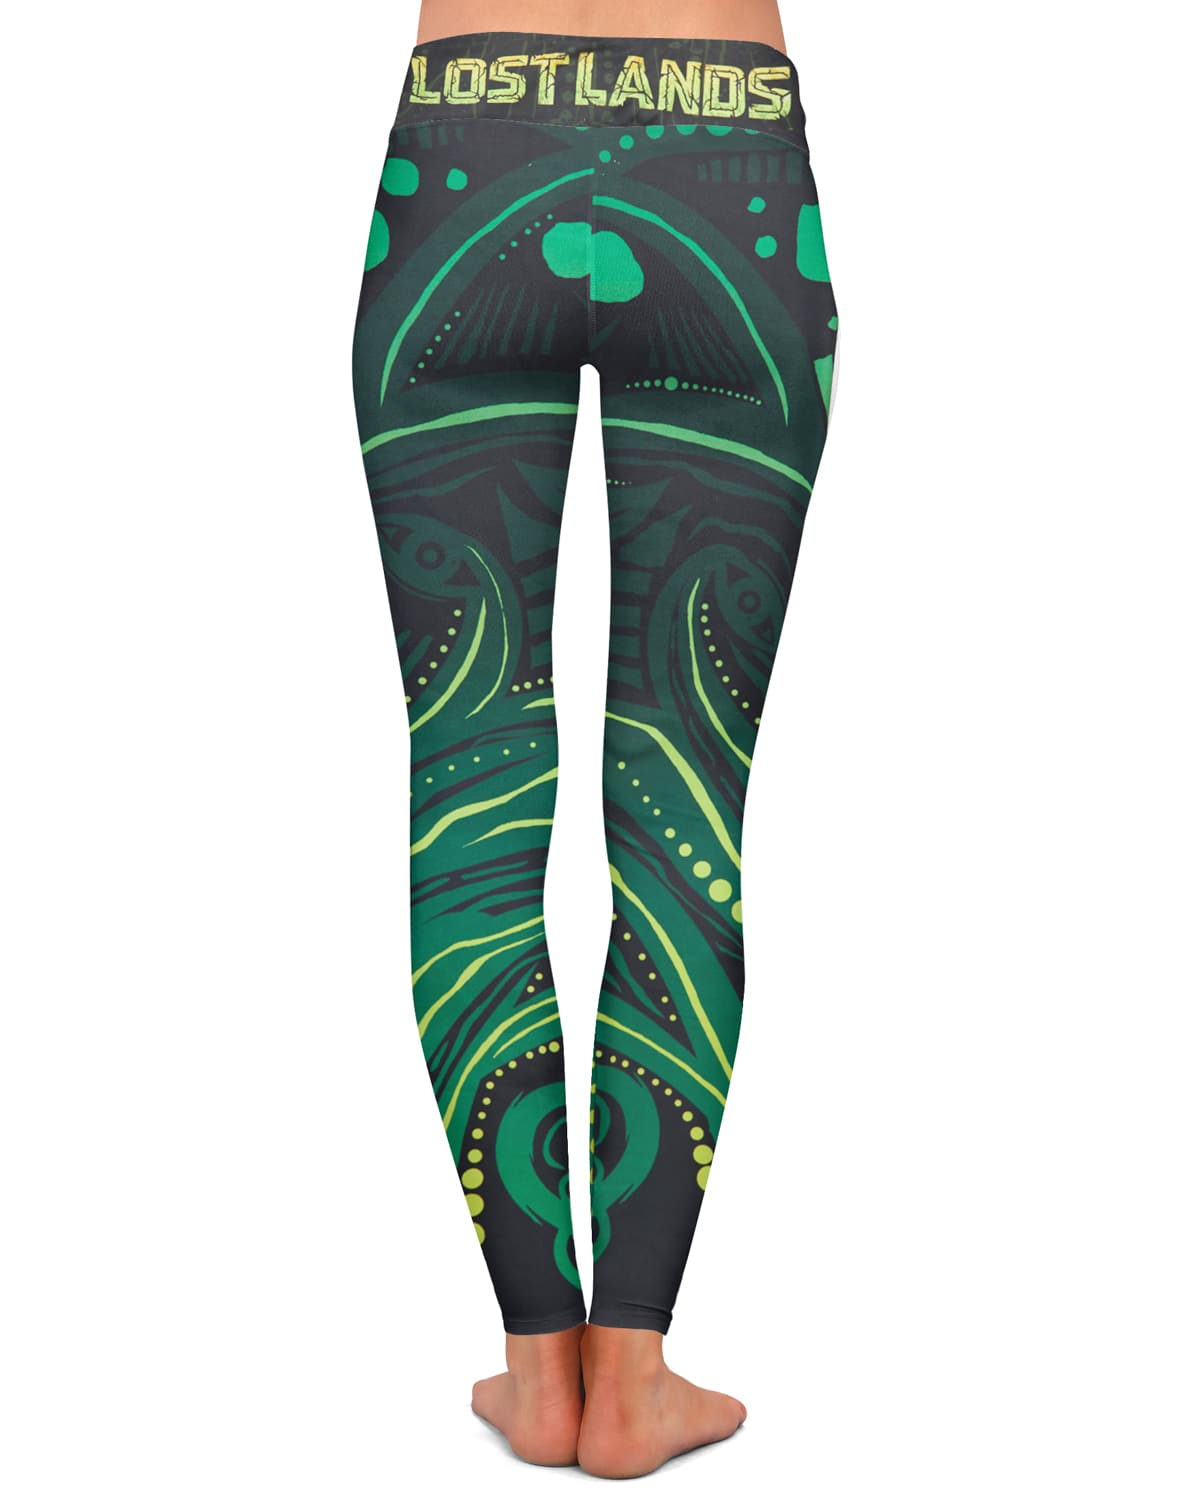 Lost Lands 'Crop Circles' Leggings (Green)